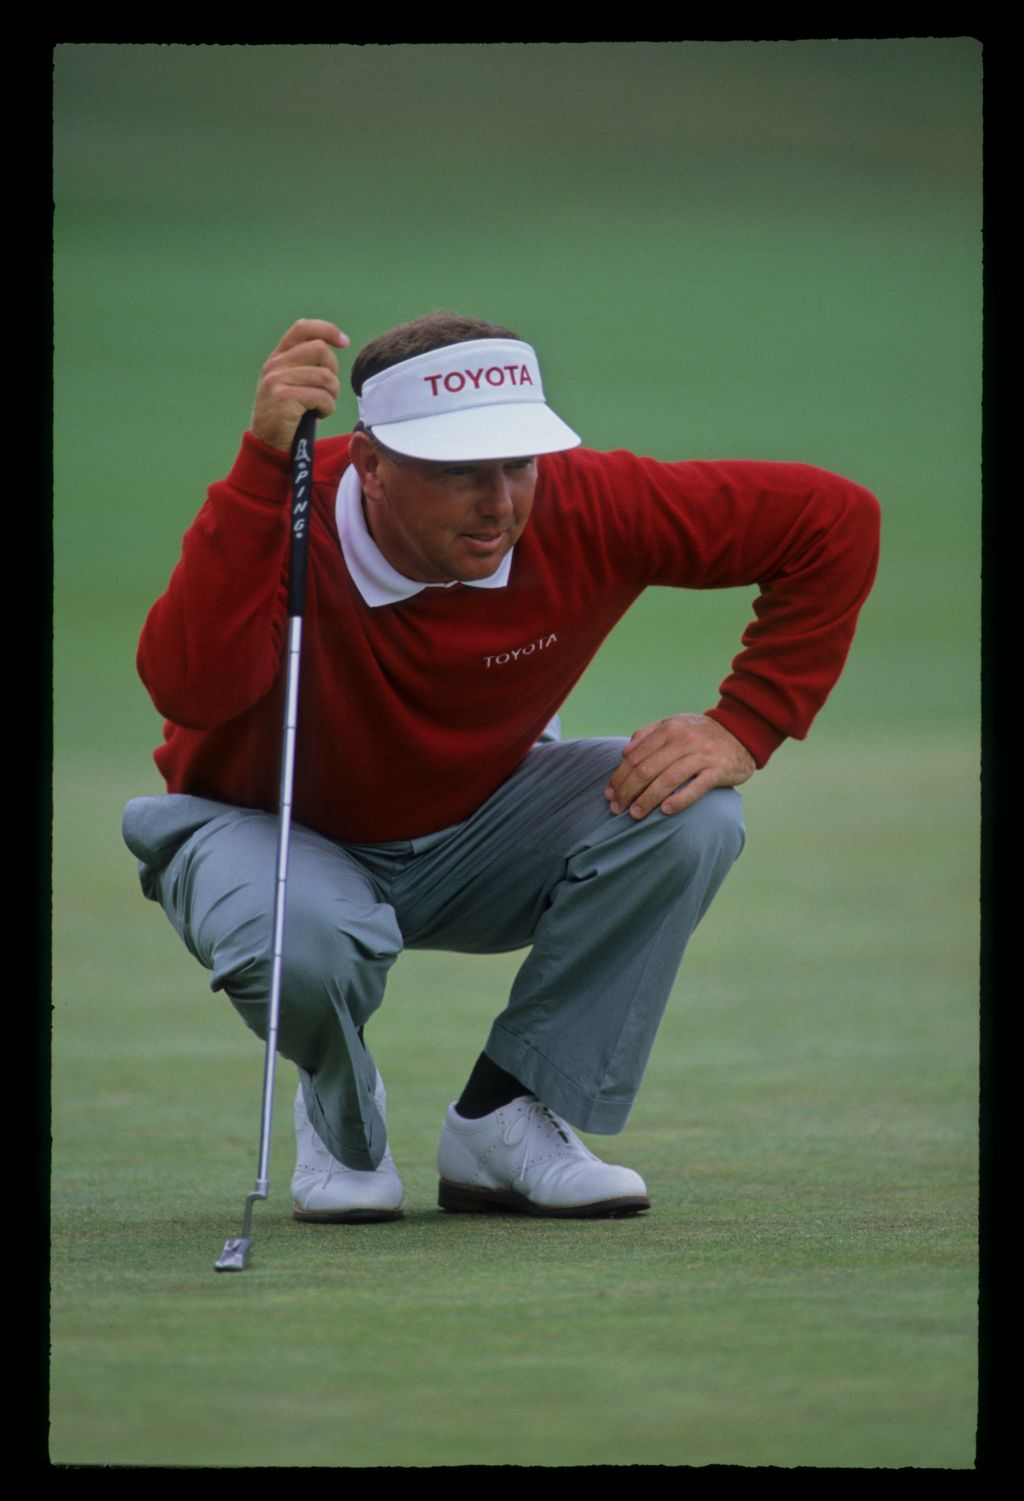 Mark O'Meara lining up a putt during the 1992 US Open